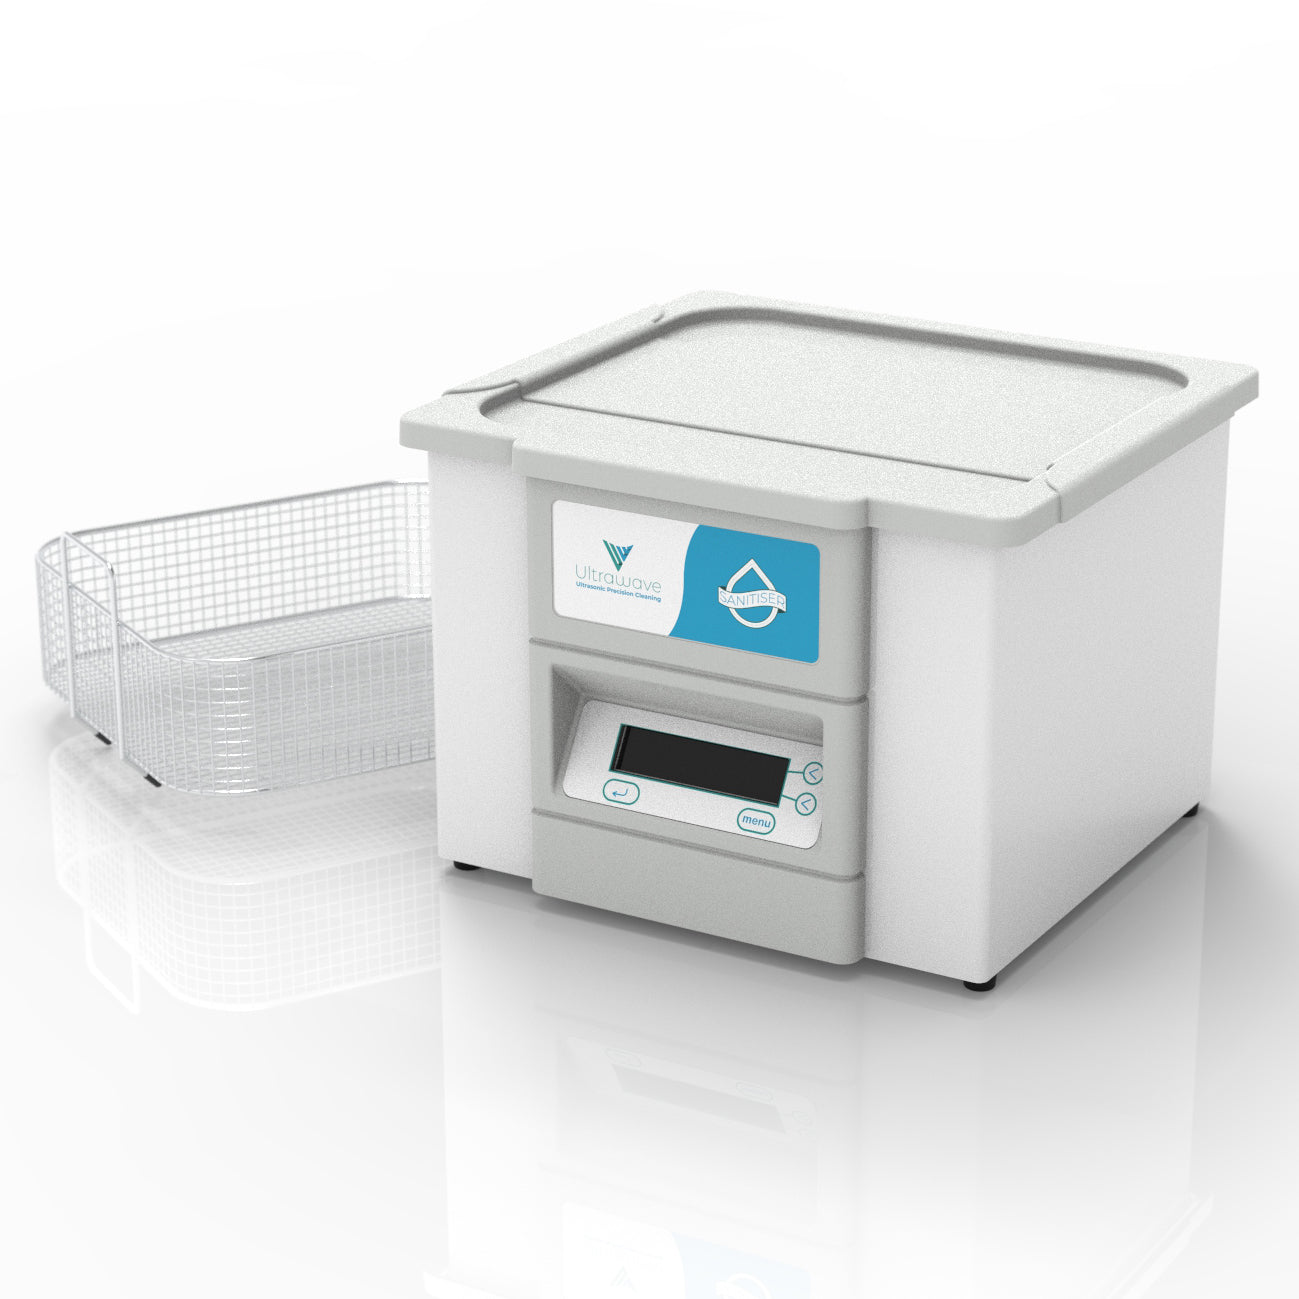 Sanitiser Ultrasonic Cleaning Bath 13L Product Image